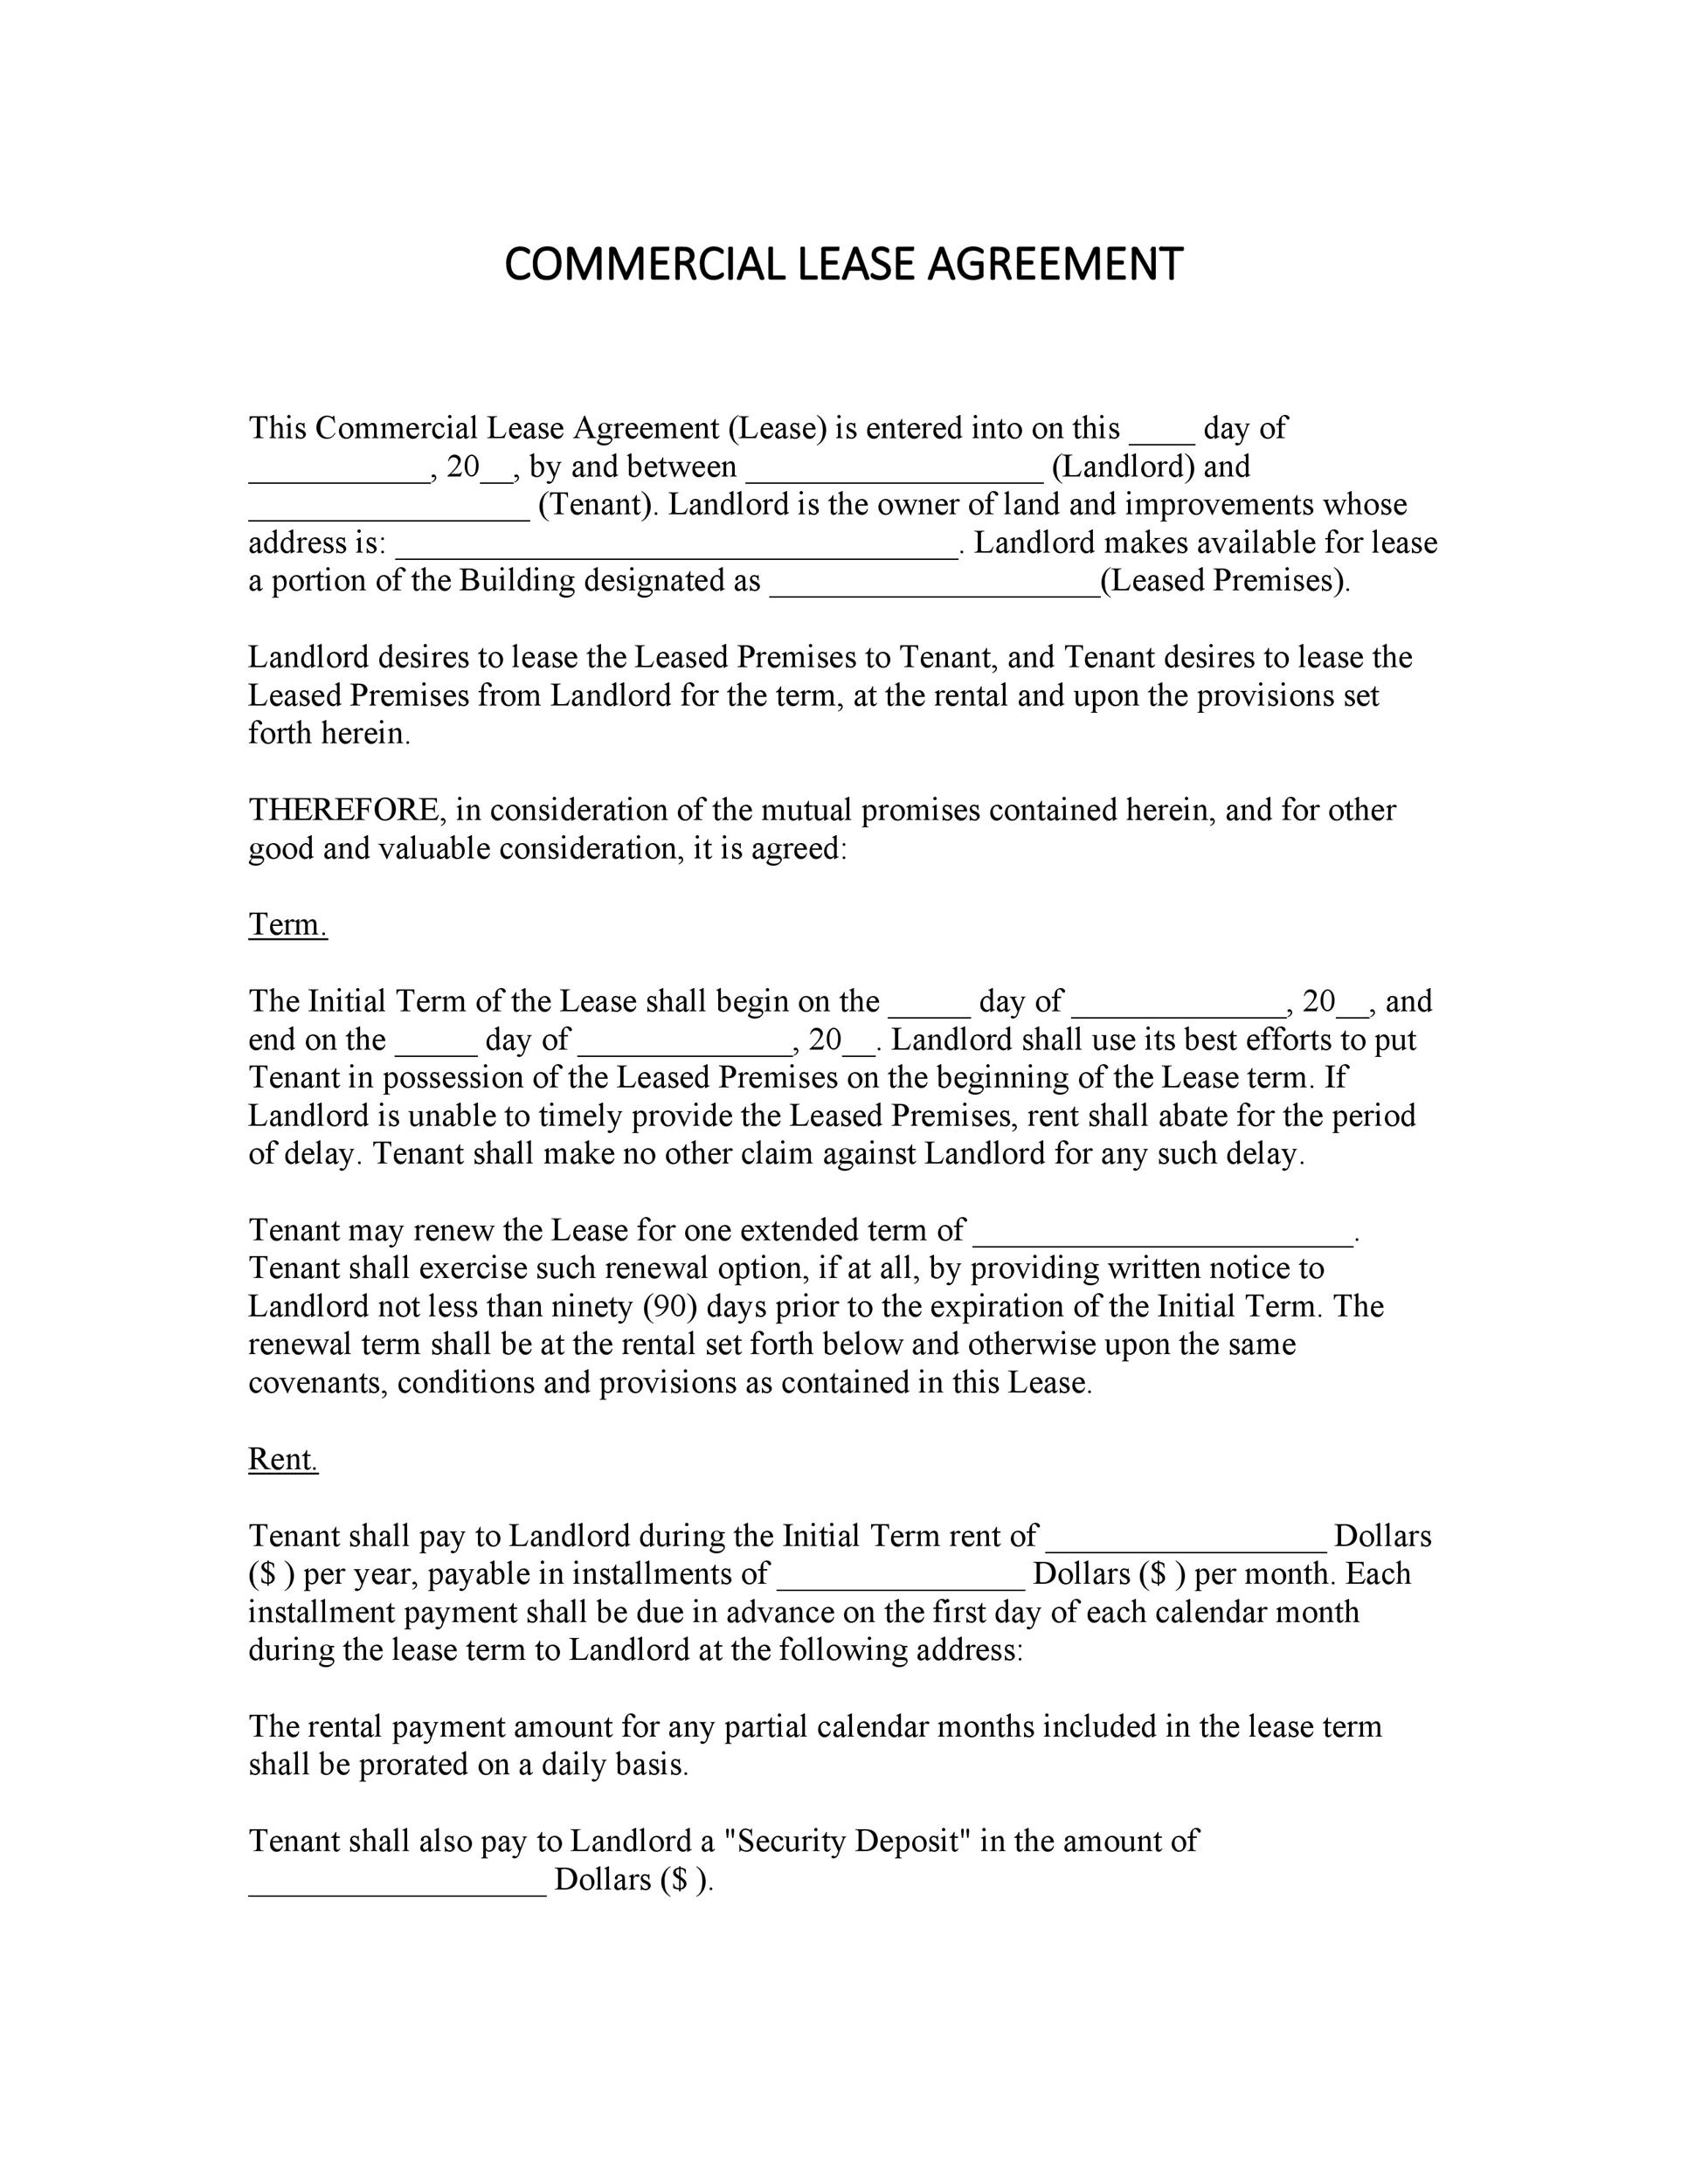 Simple Agreement Simple Agreement Template